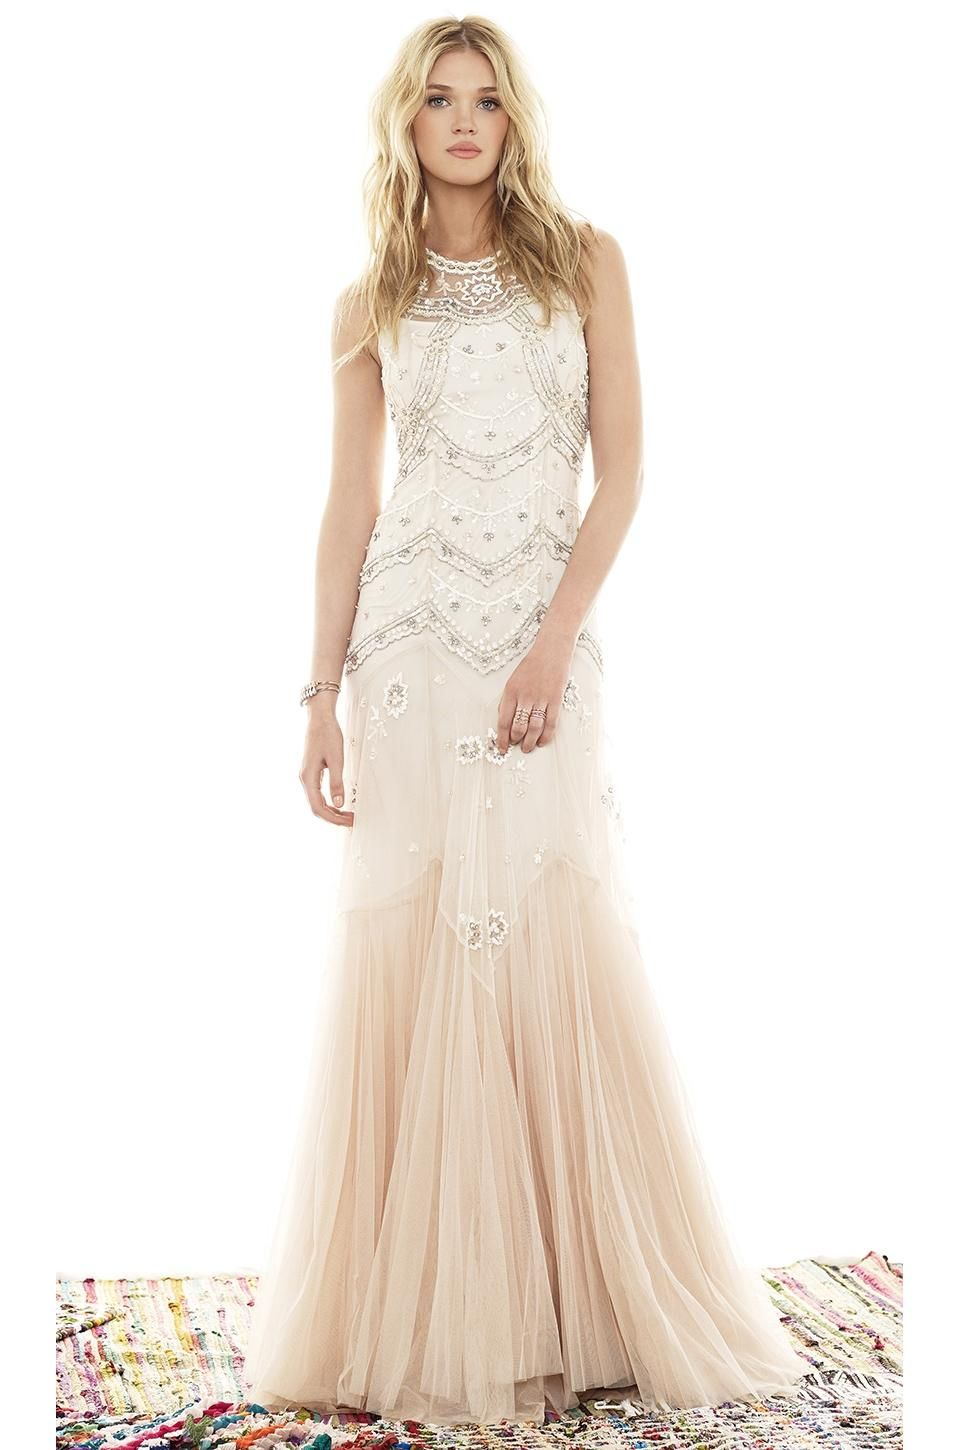 Cream/Dust Pink Tulle Cate Gown Vintage Wedding Dress   Wedding ...